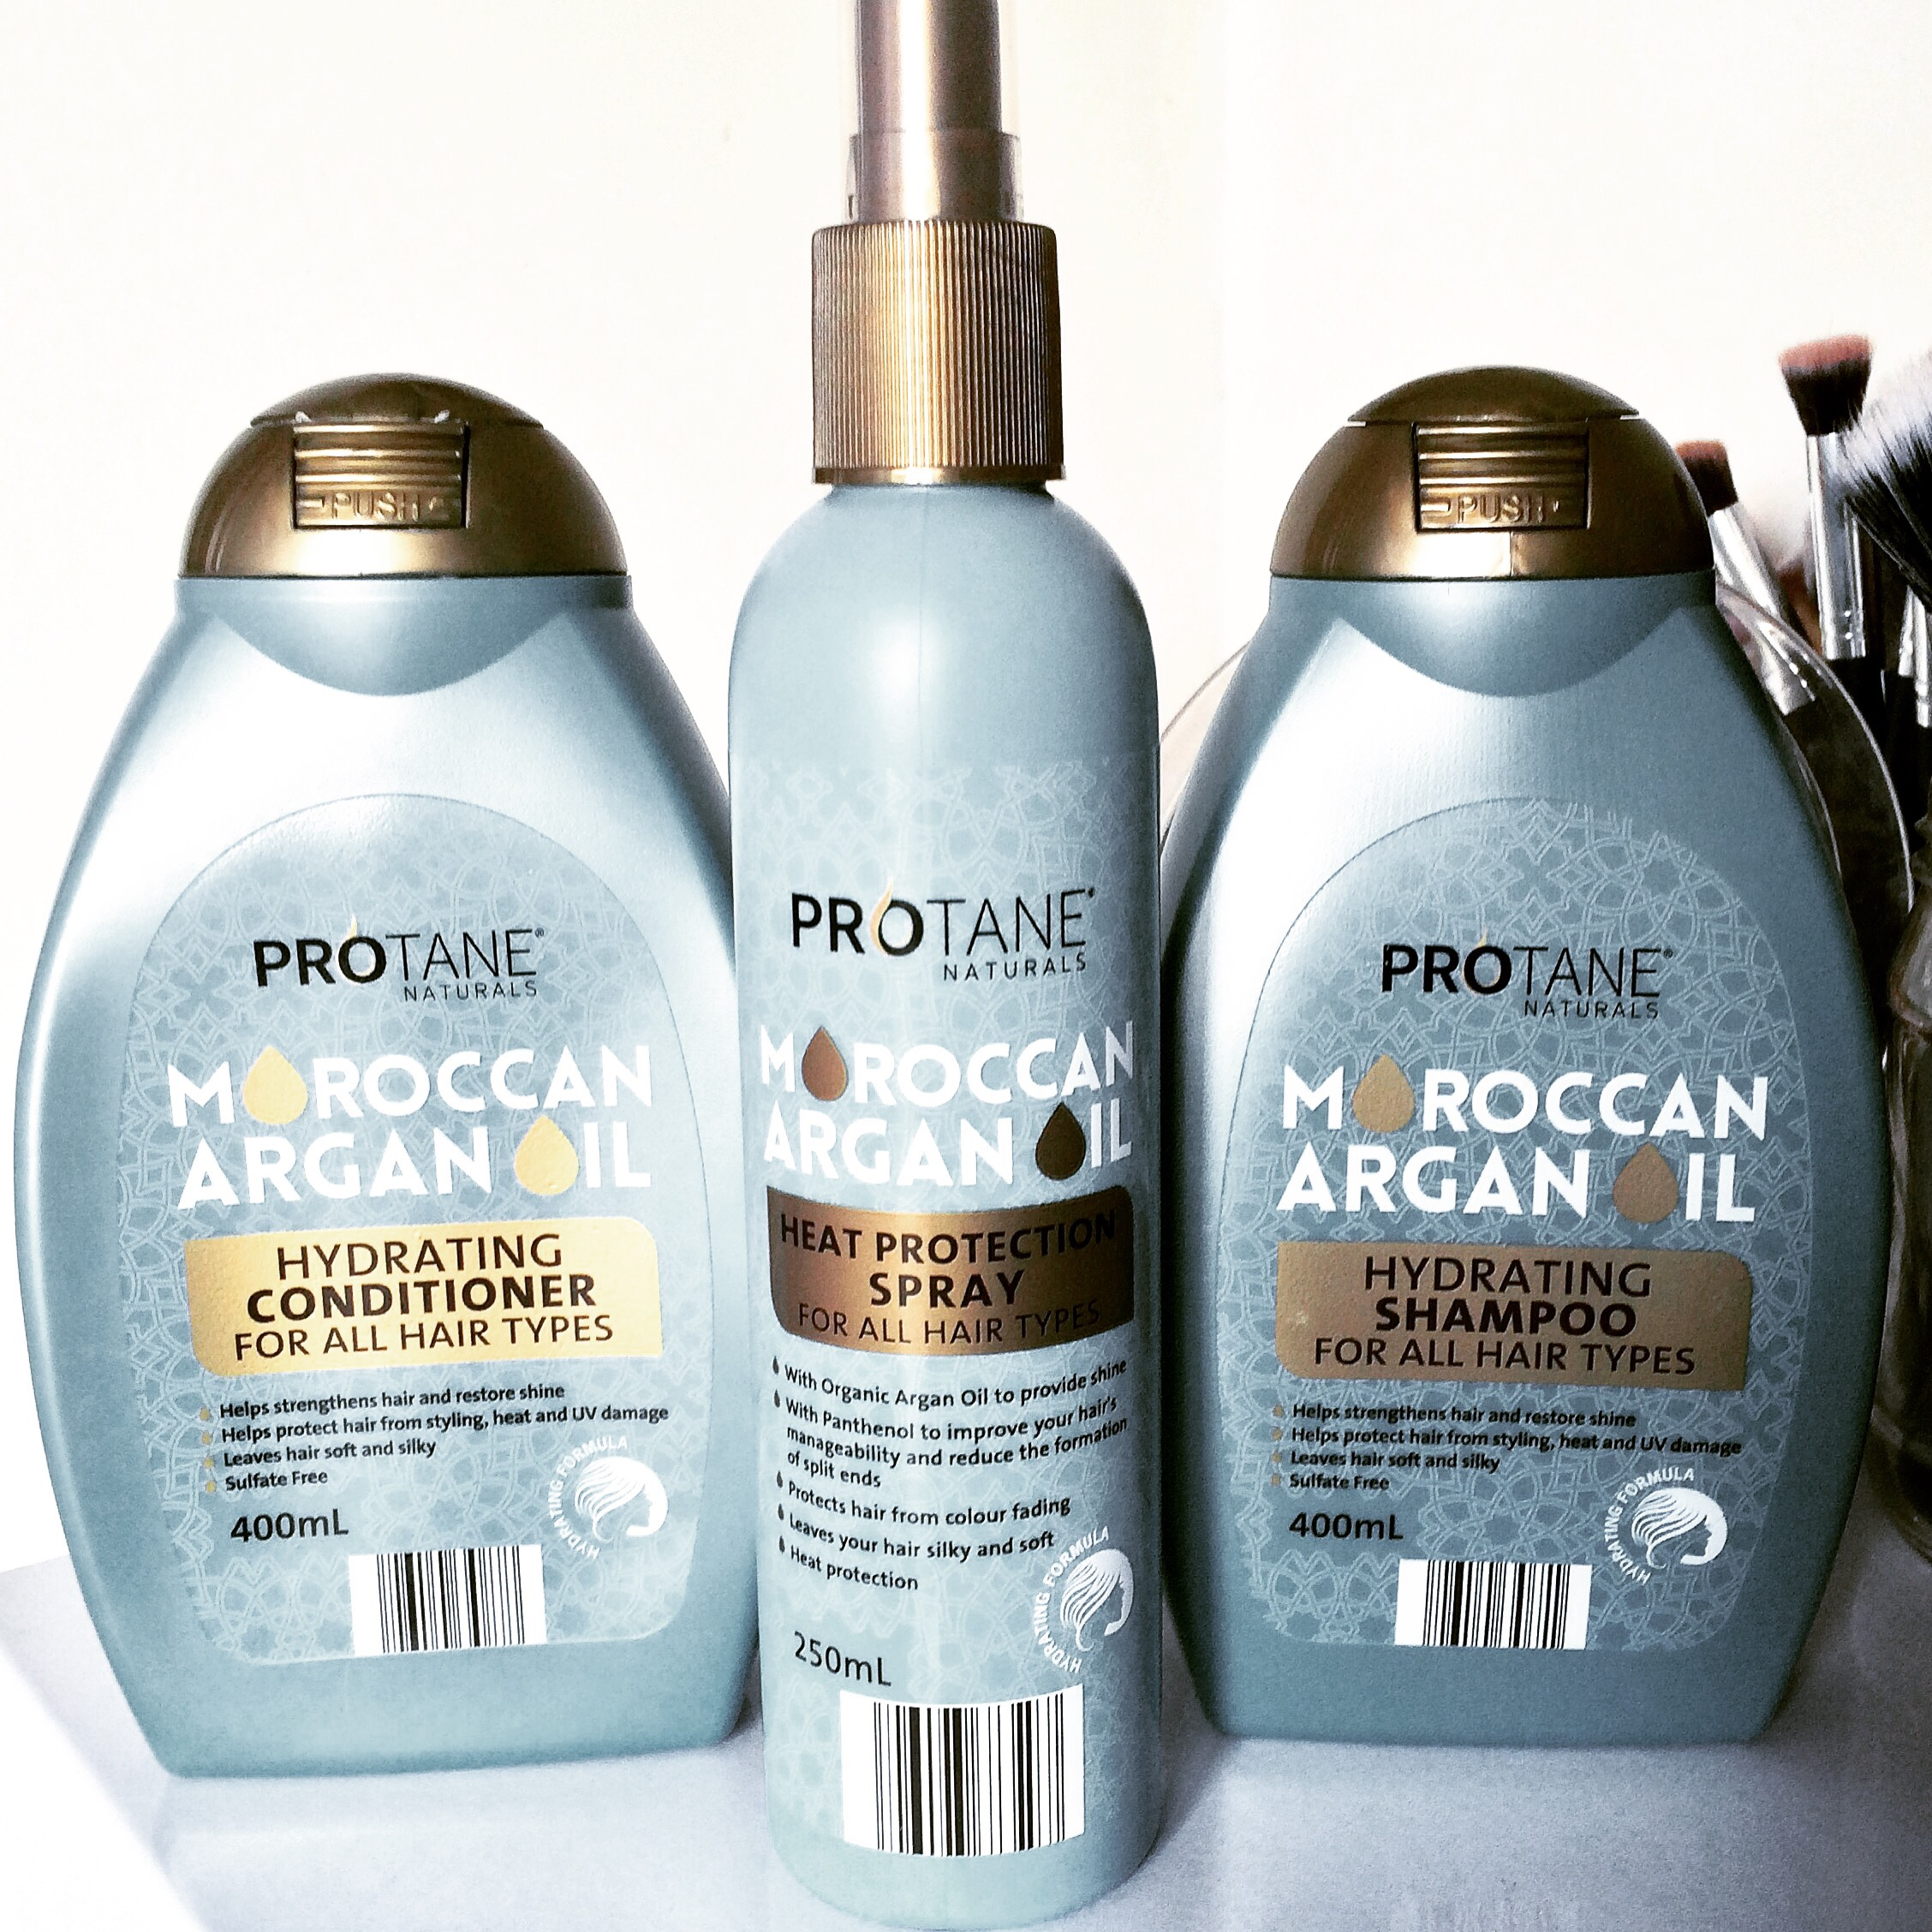 Aldi Shampoo Range Favourite Haircare On A Budget Protane Natural Moroccan